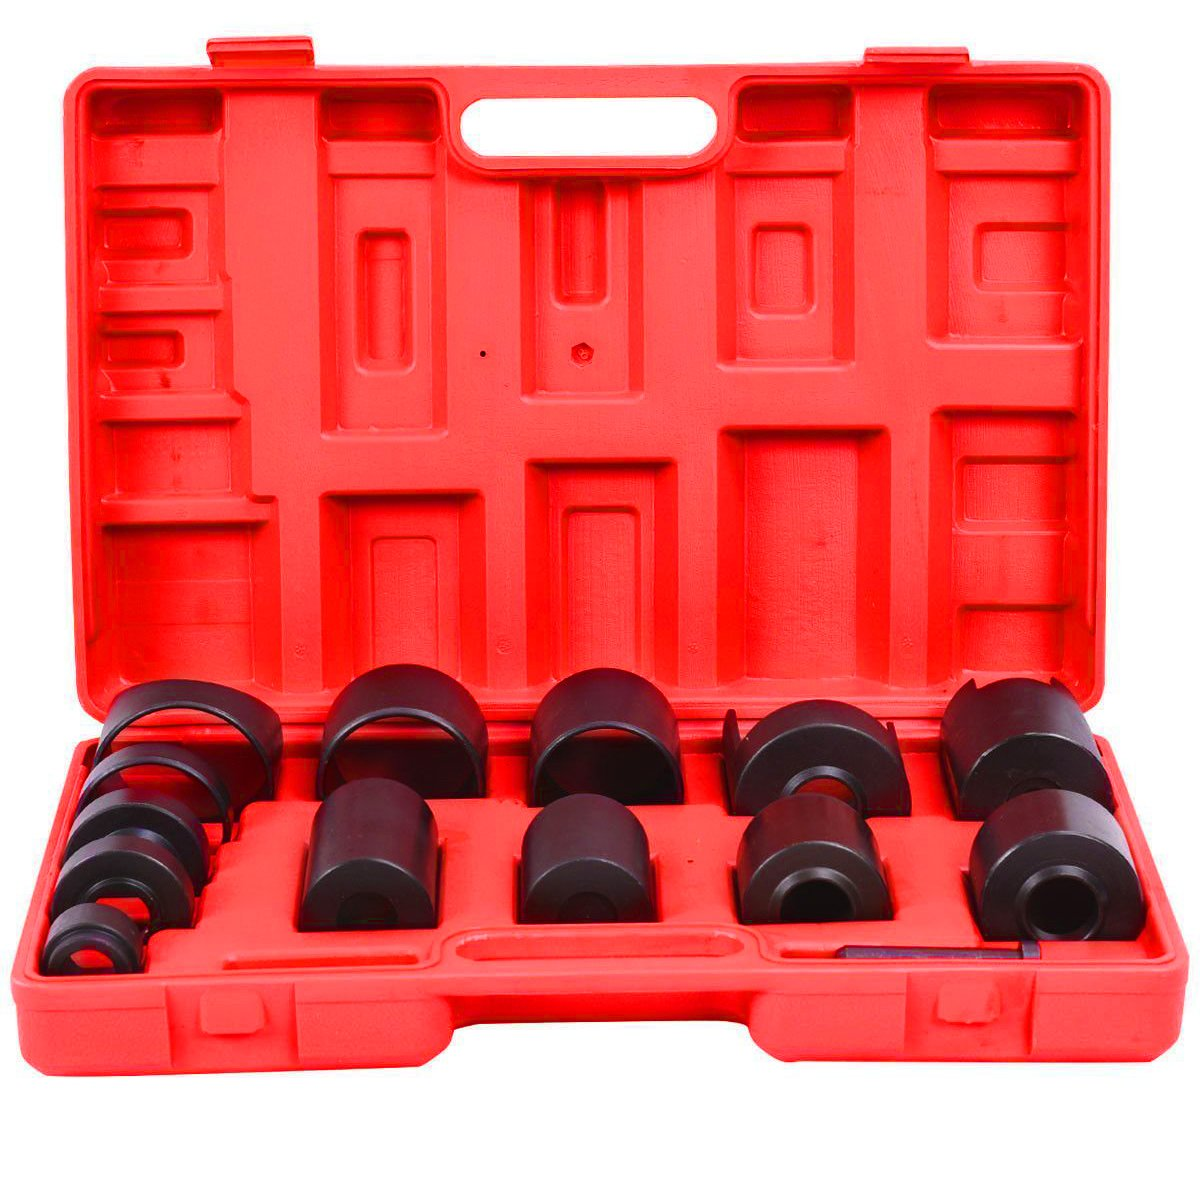 Goplus 14 Pc Master Ball Joint Remover Installer Adaptors Kit Receiving Tube